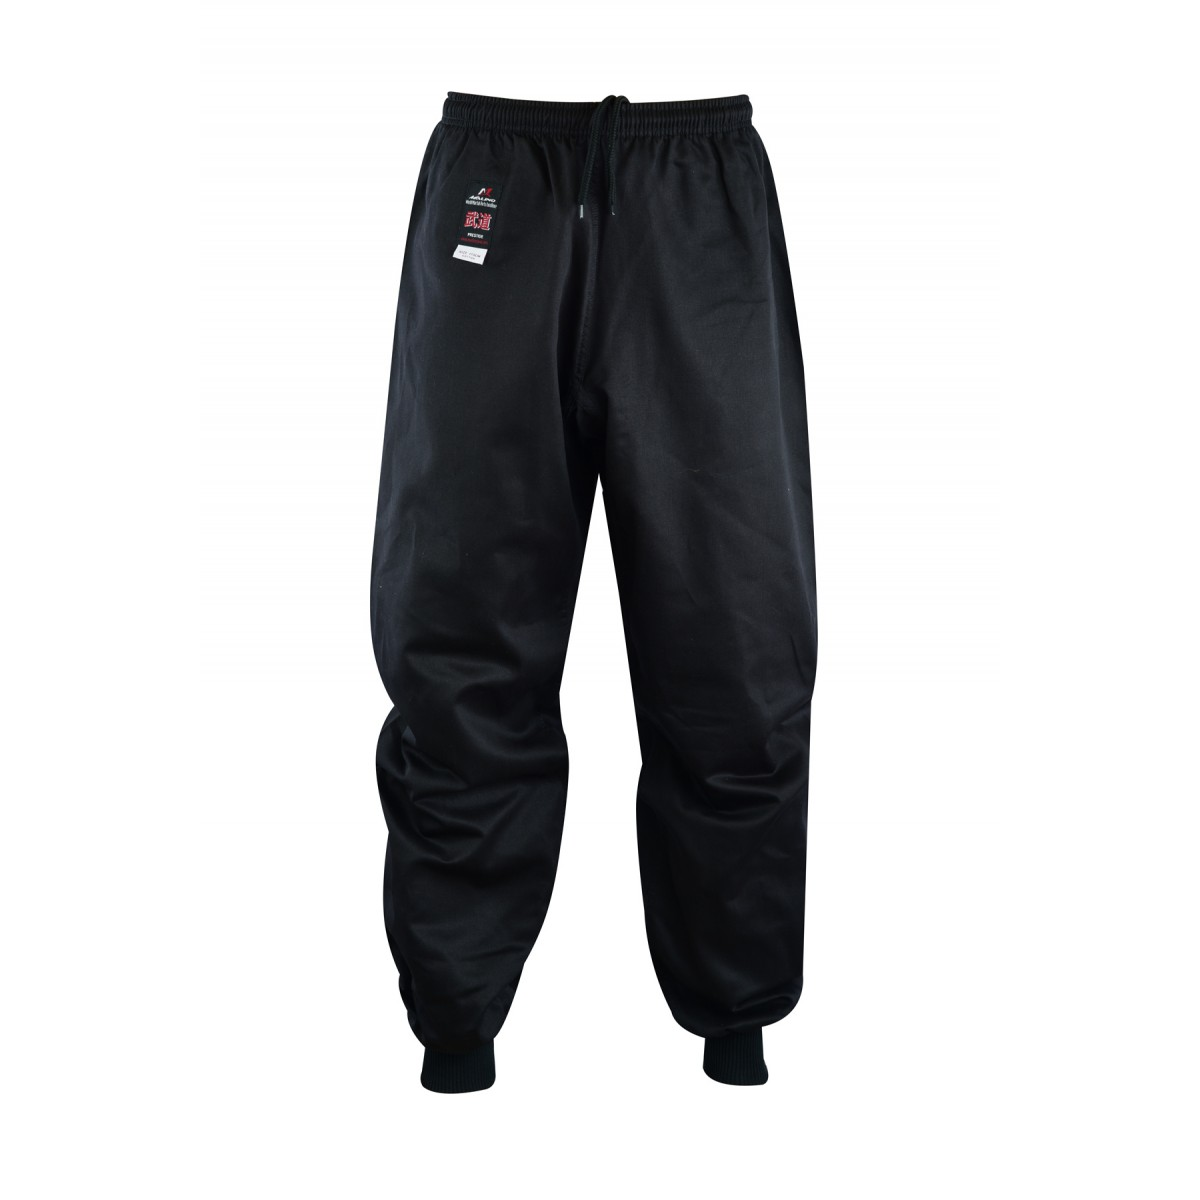 Malino Kids Kung Fu Trousers Cotton Black - 8oz